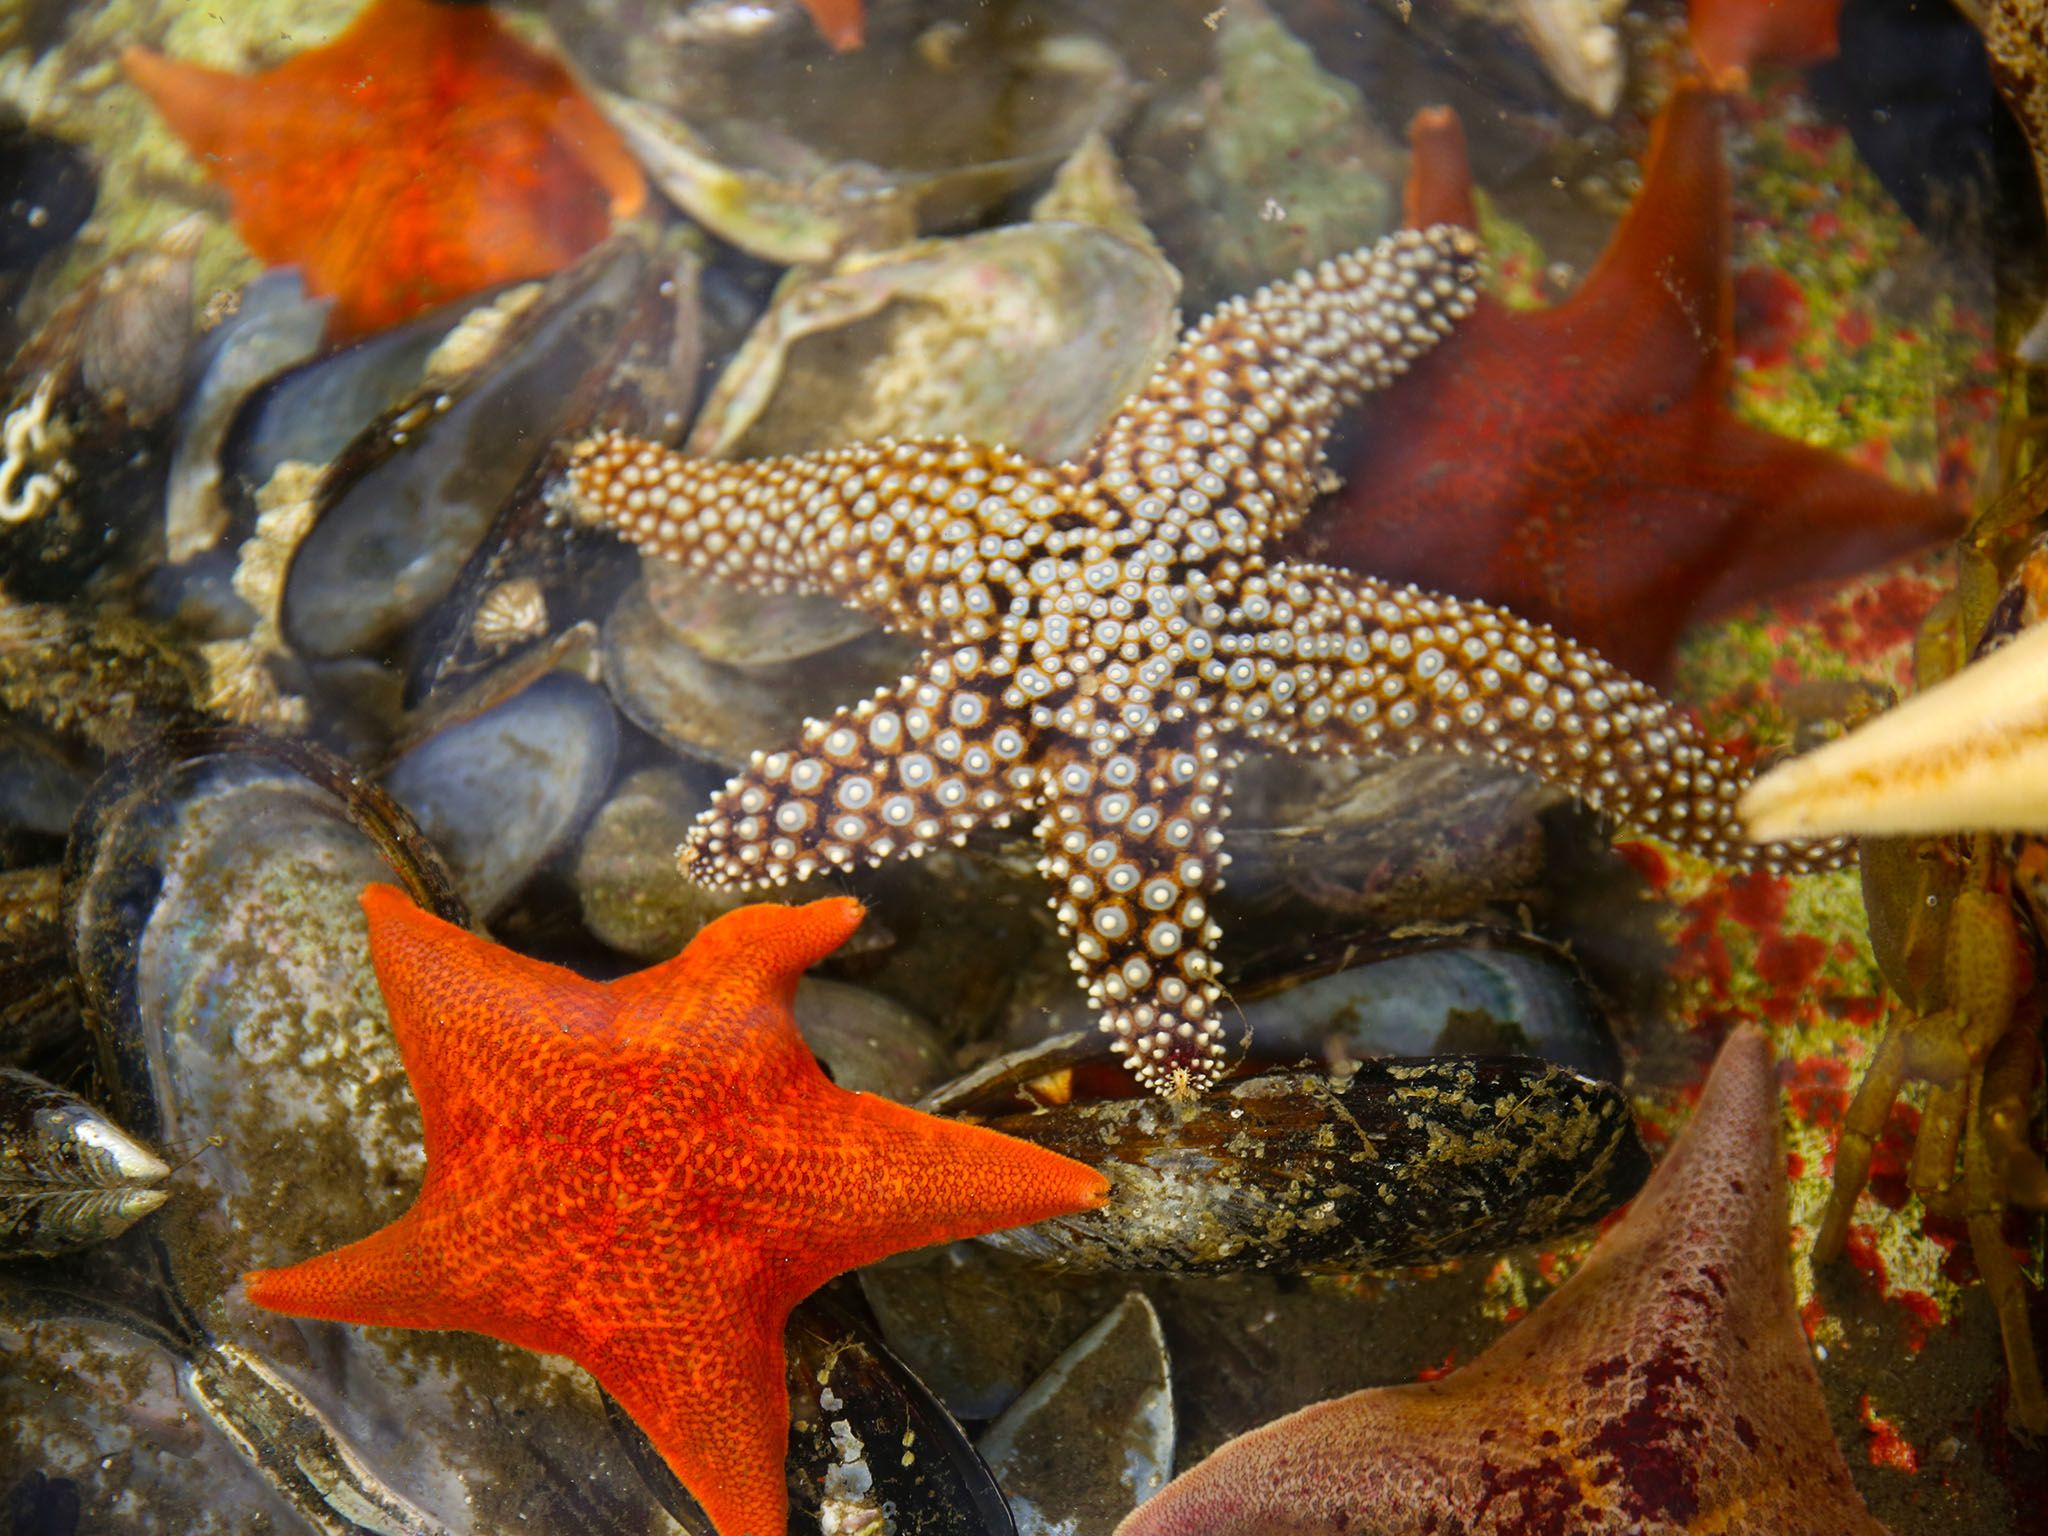 Santa Barbara, Calif.: Some star fish in a tide pool at UC Santa Barbara. This image is from... [Photo of the day - February 2016]